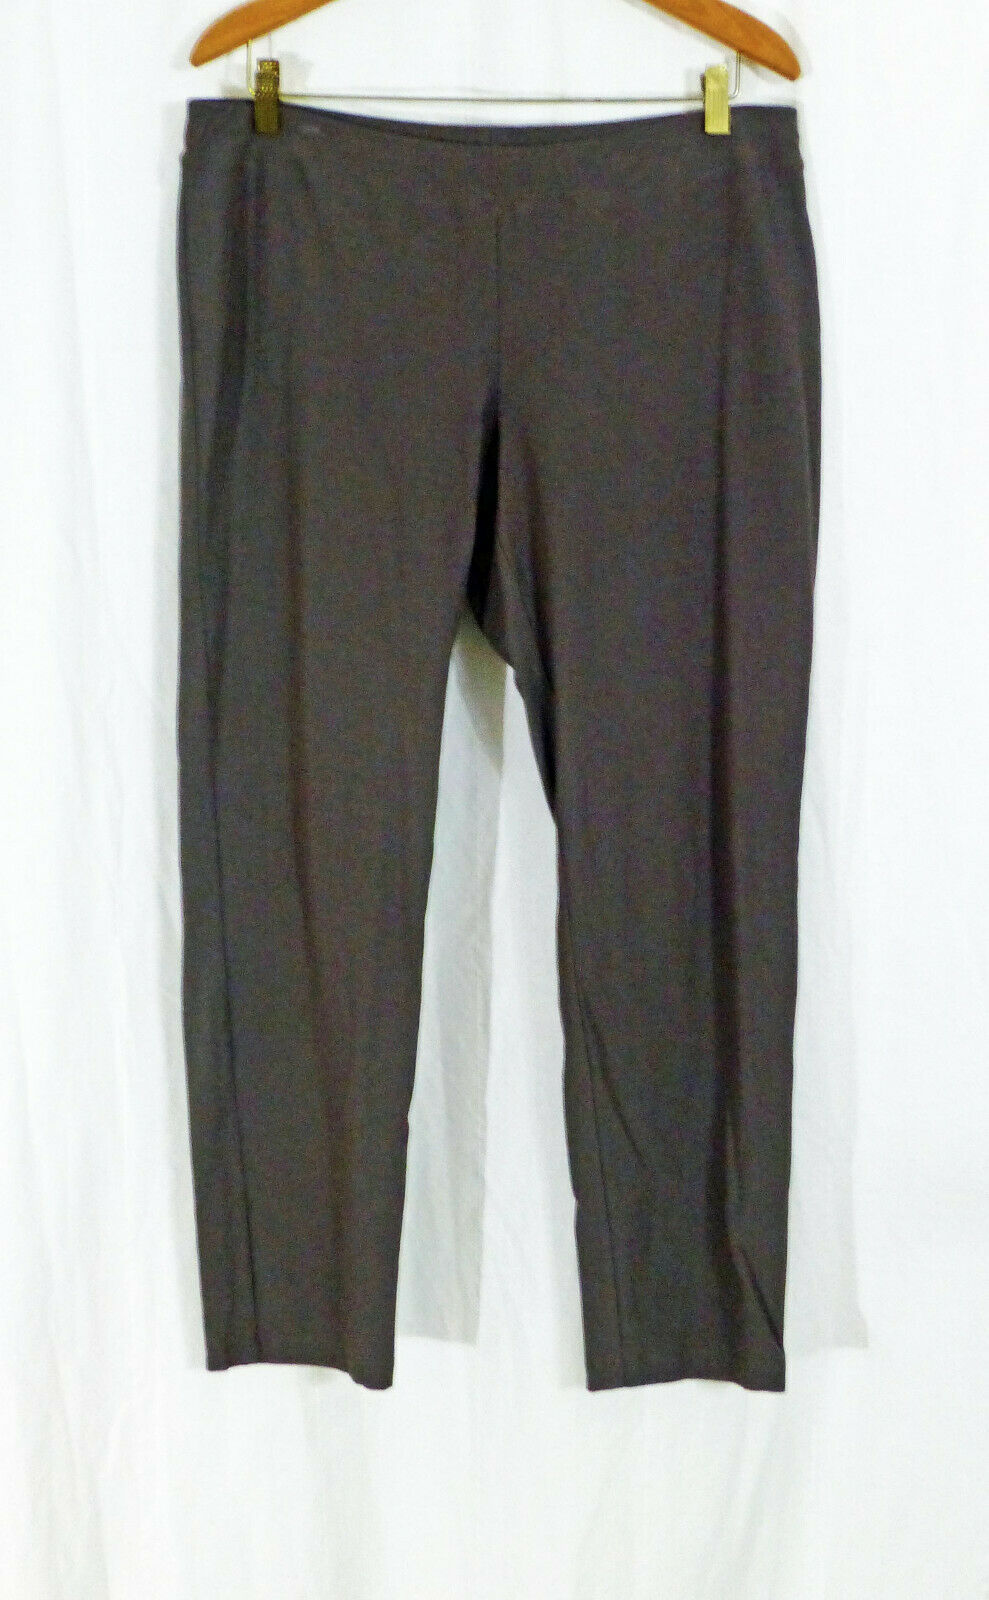 EILEEN FISHER DK TAUPE BRN WASHABLE STRETCH CREPE KNIT SLIM LEG ANKLE PANT L LN